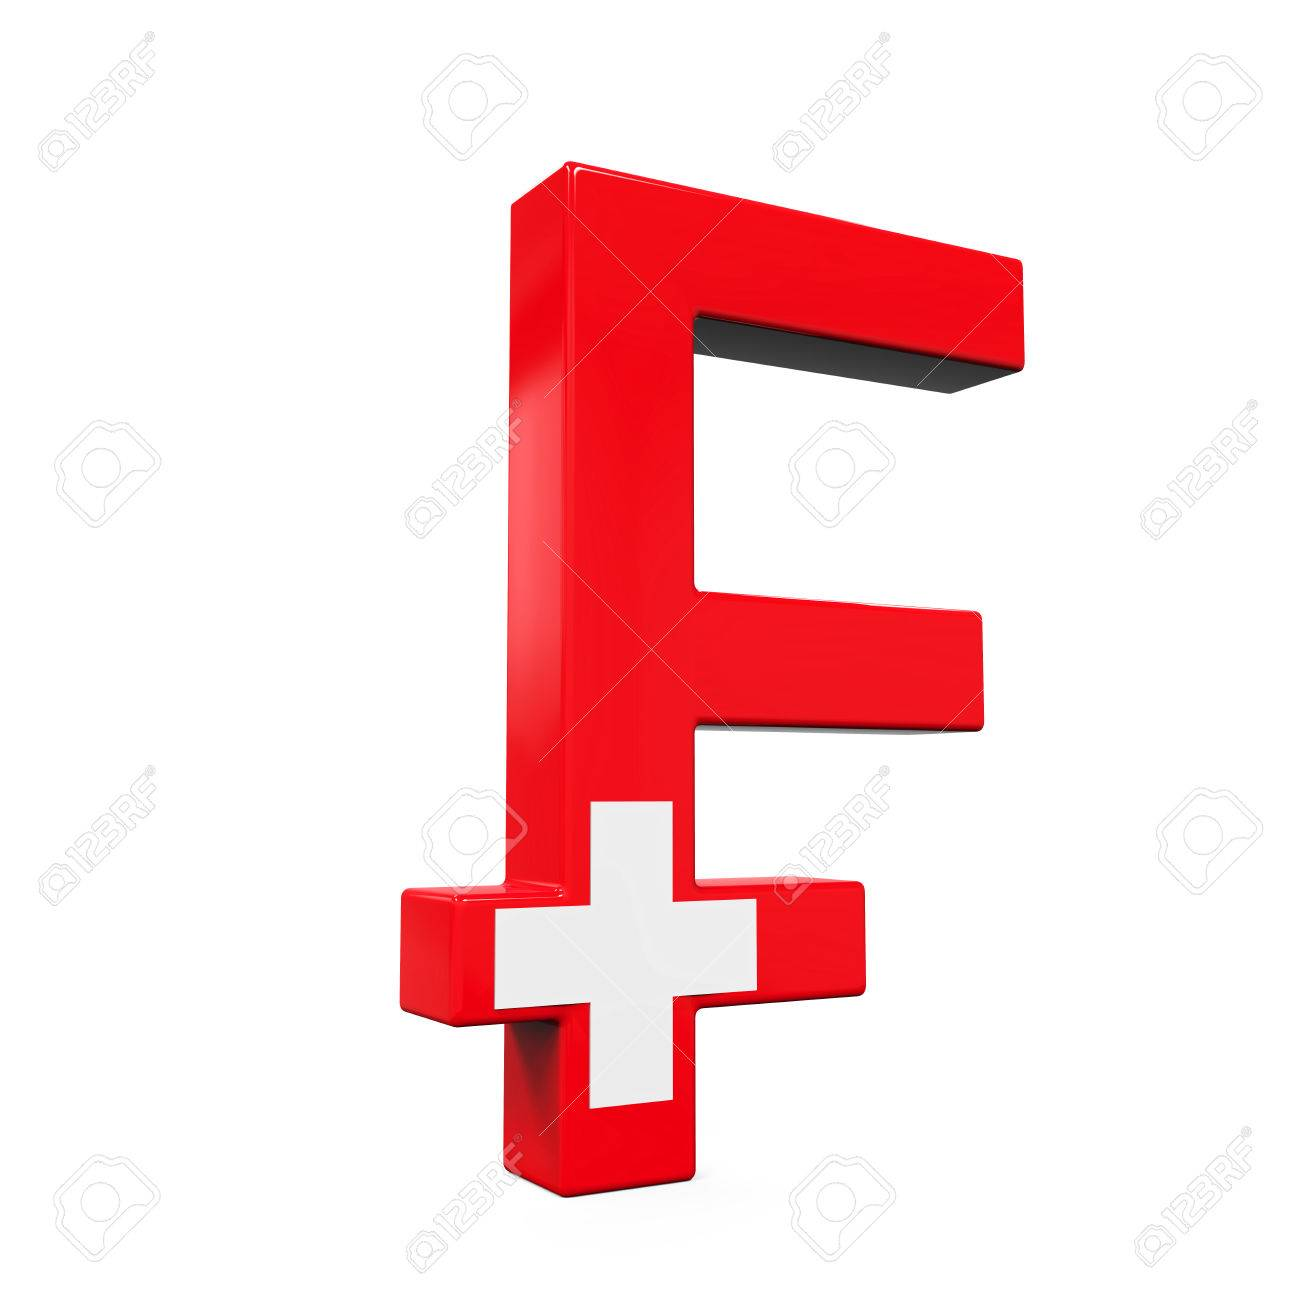 Swiss franc symbol stock photo picture and royalty free image swiss franc symbol stock photo 35815212 buycottarizona Images